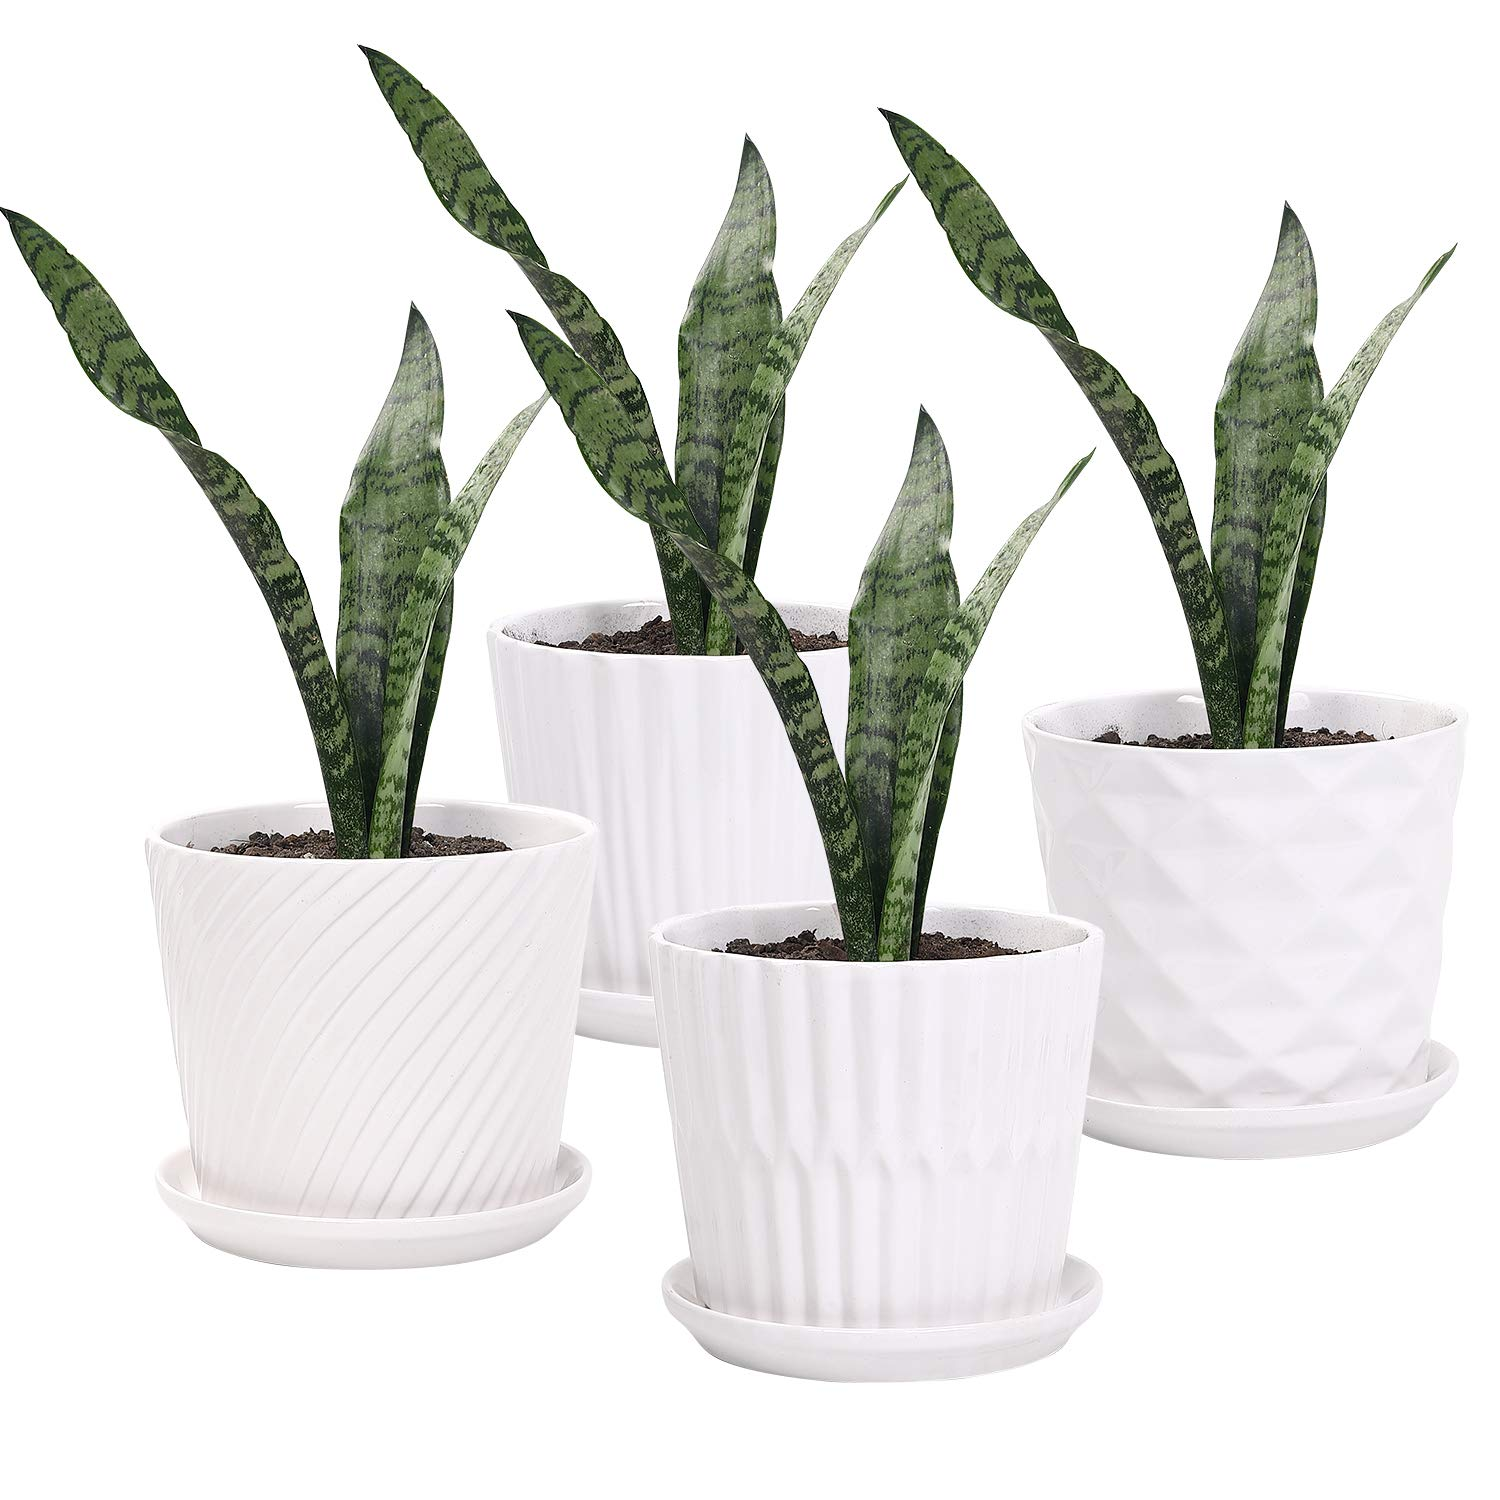 Plant Pots – 5.5 Inch Cylinder Ceramic Planters with Connected Saucer, Pots for Succuelnt and Little Snake Plants, Set of 4, White